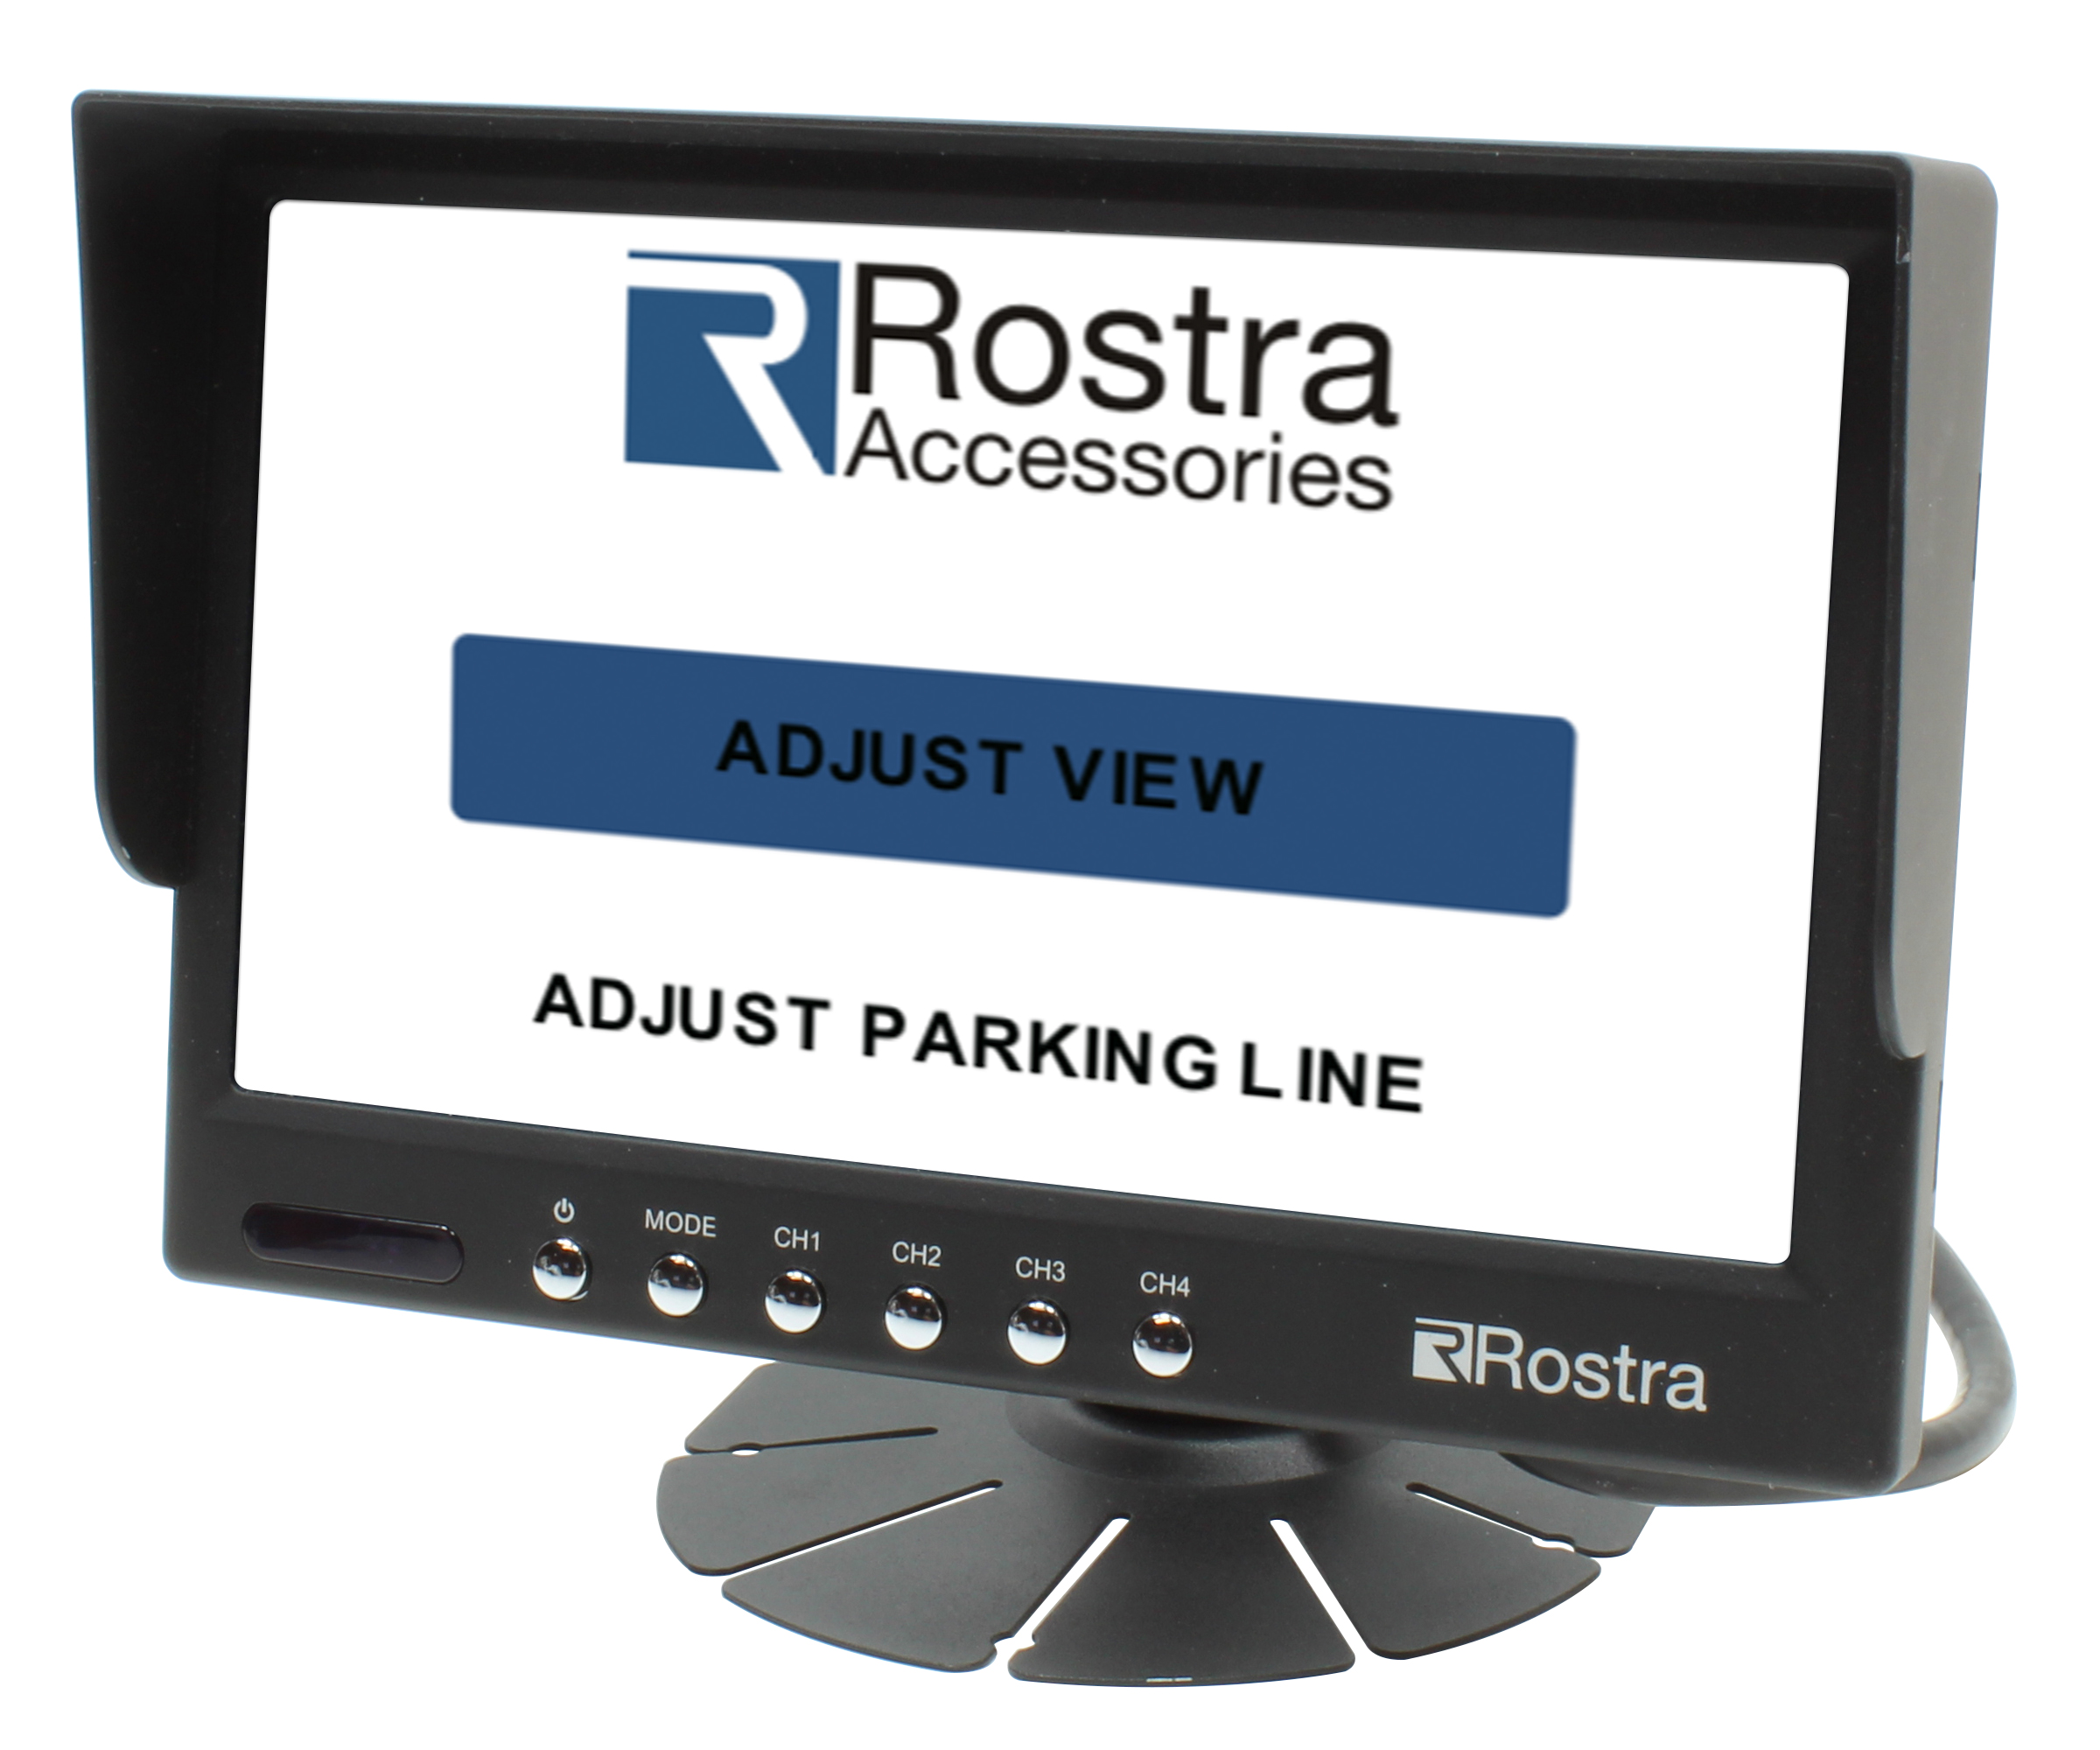 Adjustable parking guidelines can be updated as needed to match the height and width of the vehicle